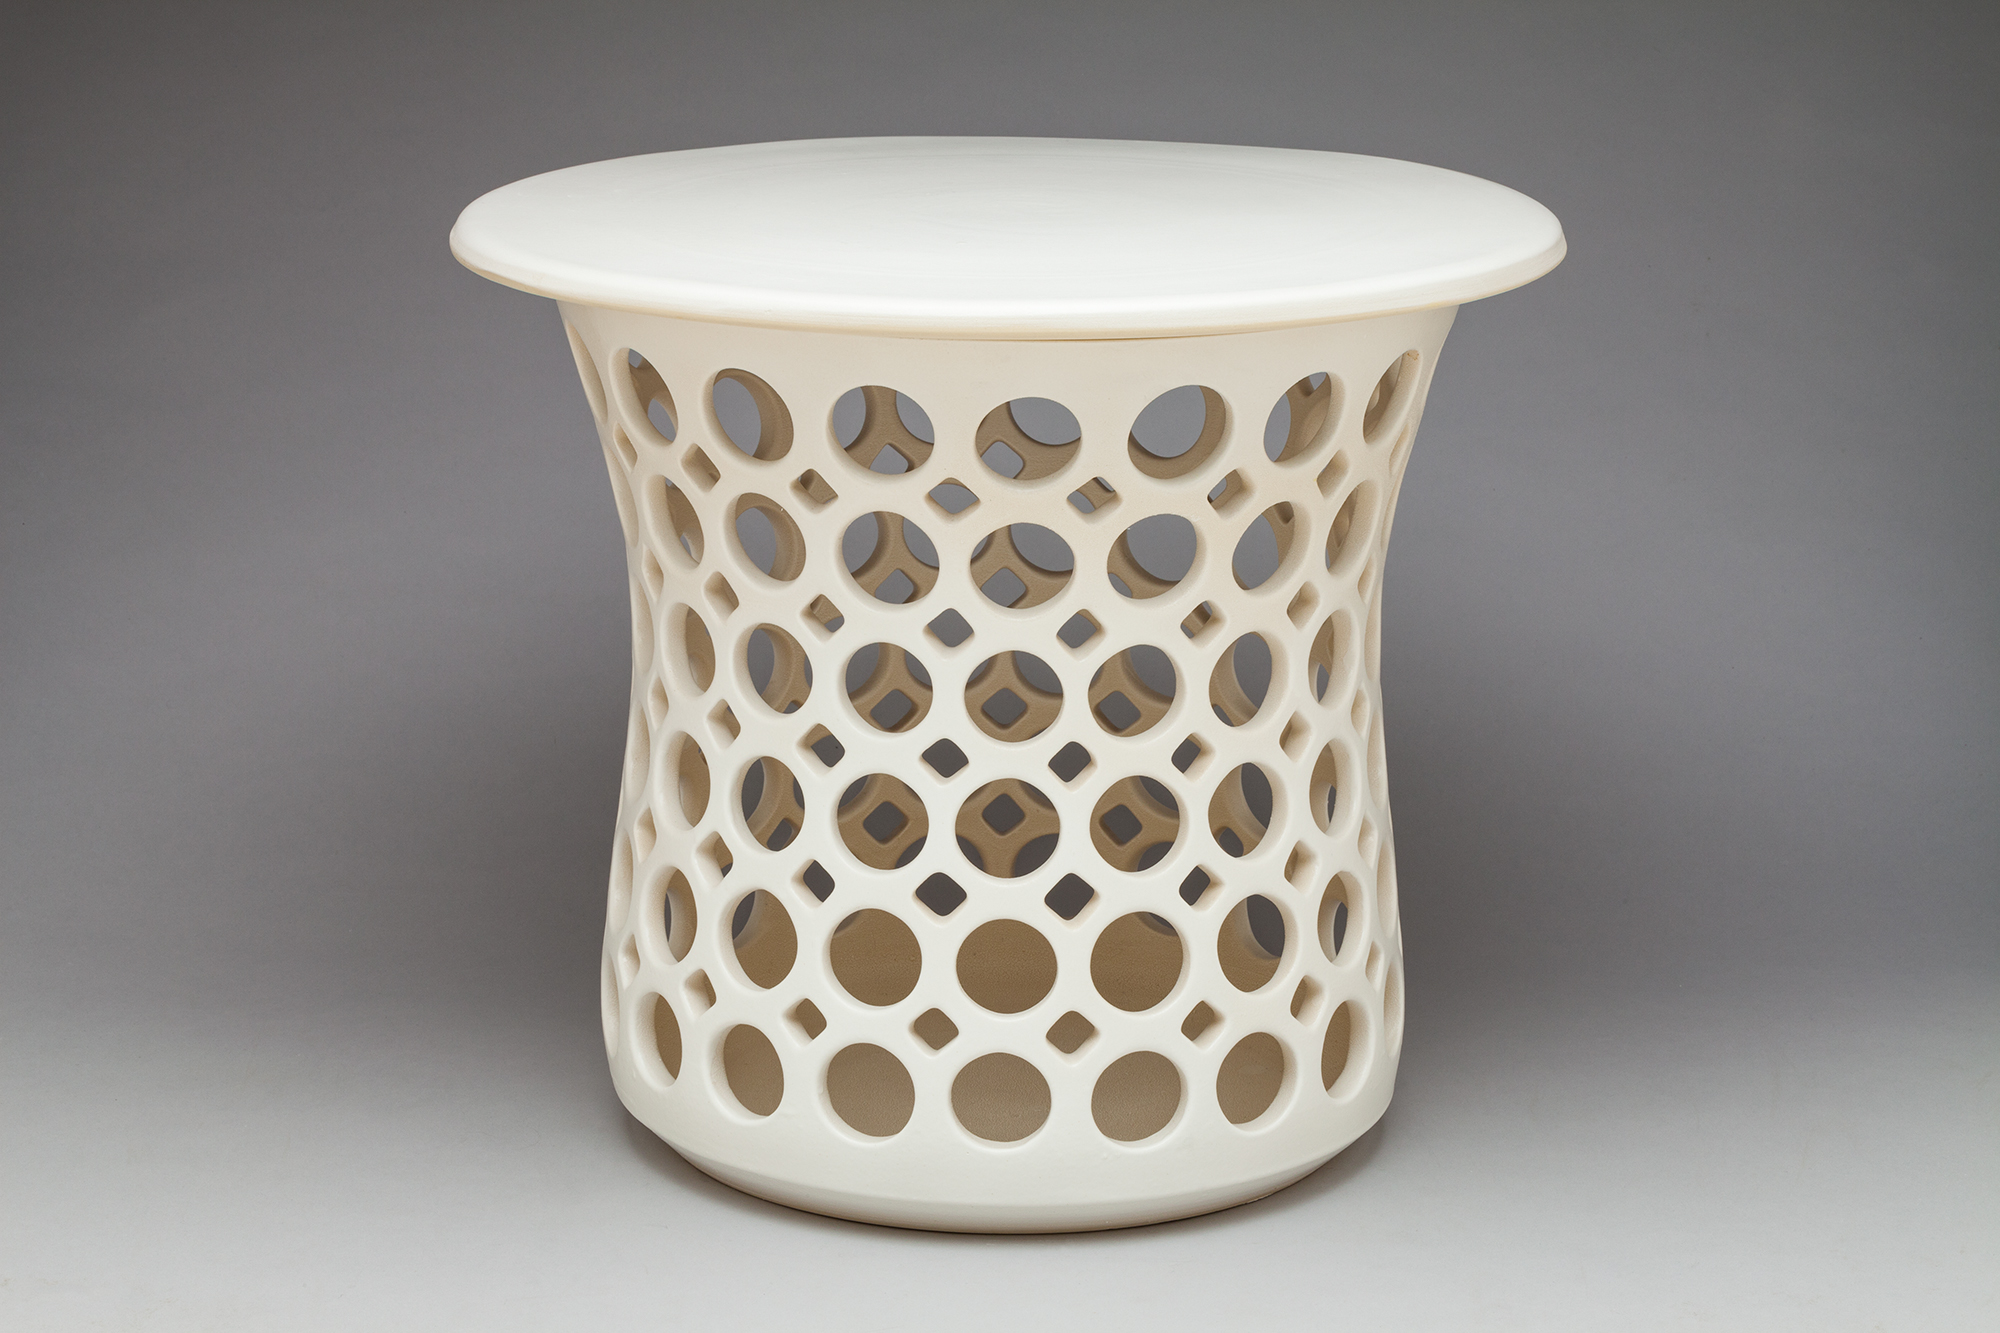 Stout Openwork Hourglass Table / Stool - Dimensions: 15 1/2